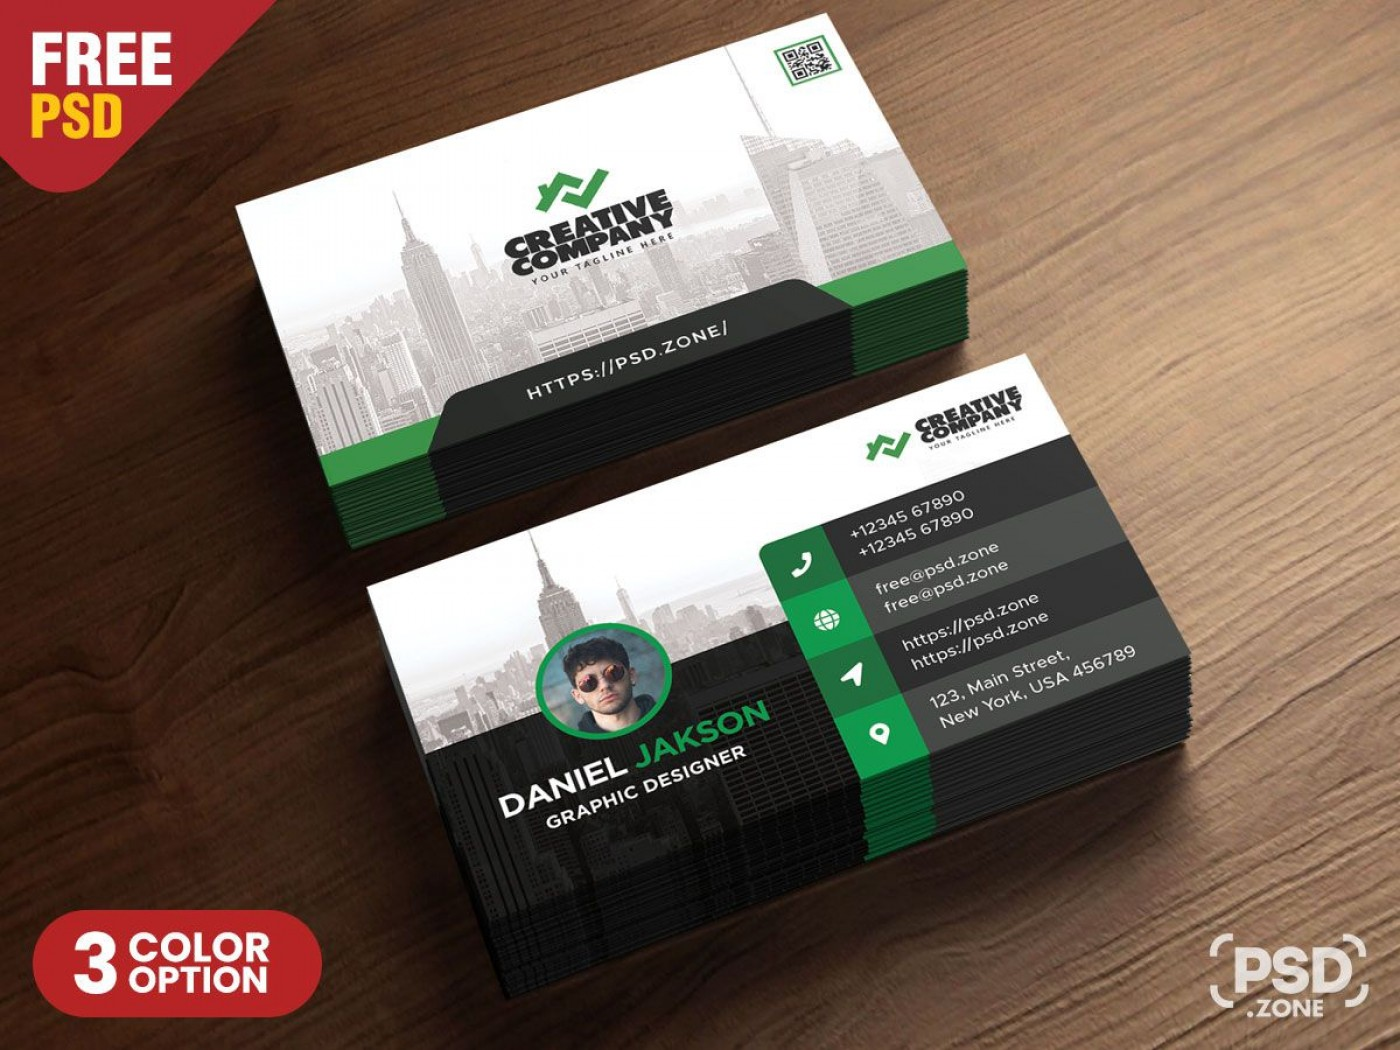 005 Best Psd Busines Card Template Design  With Bleed And Crop Mark Vistaprint Free1400